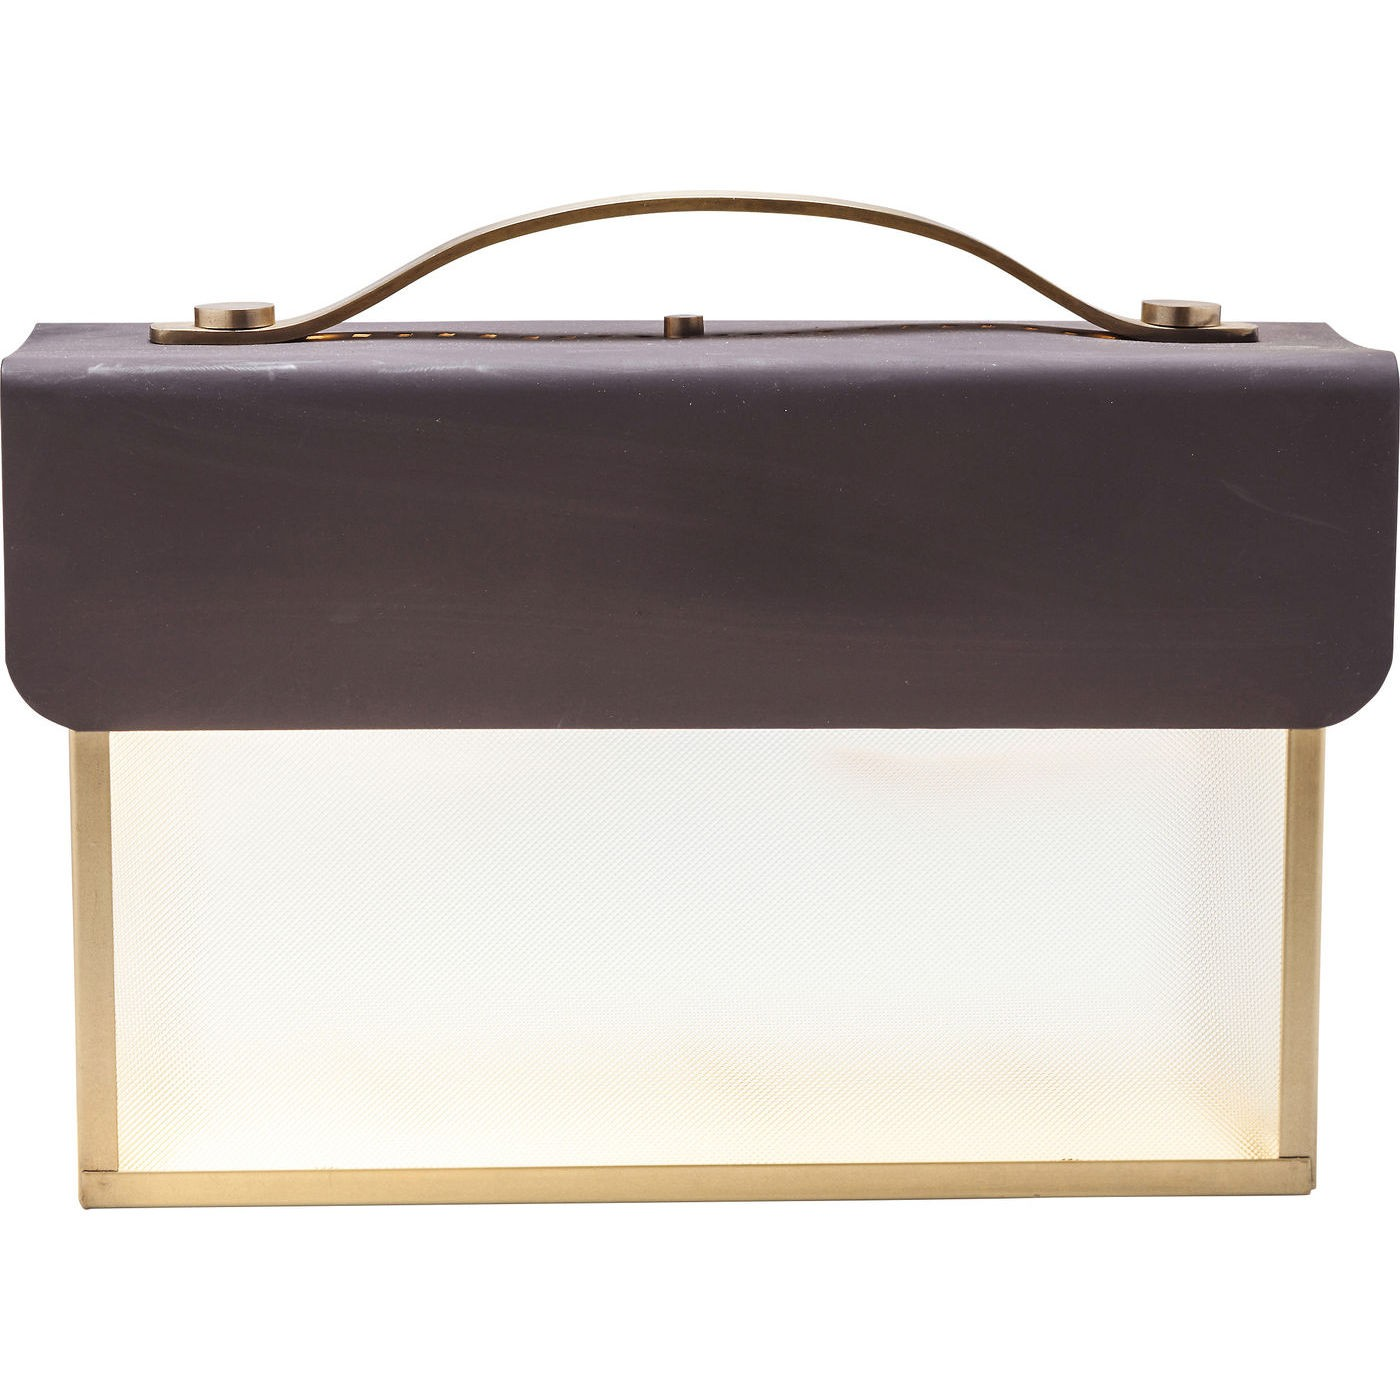 Image of   Gulvlampe Suitcase Stor